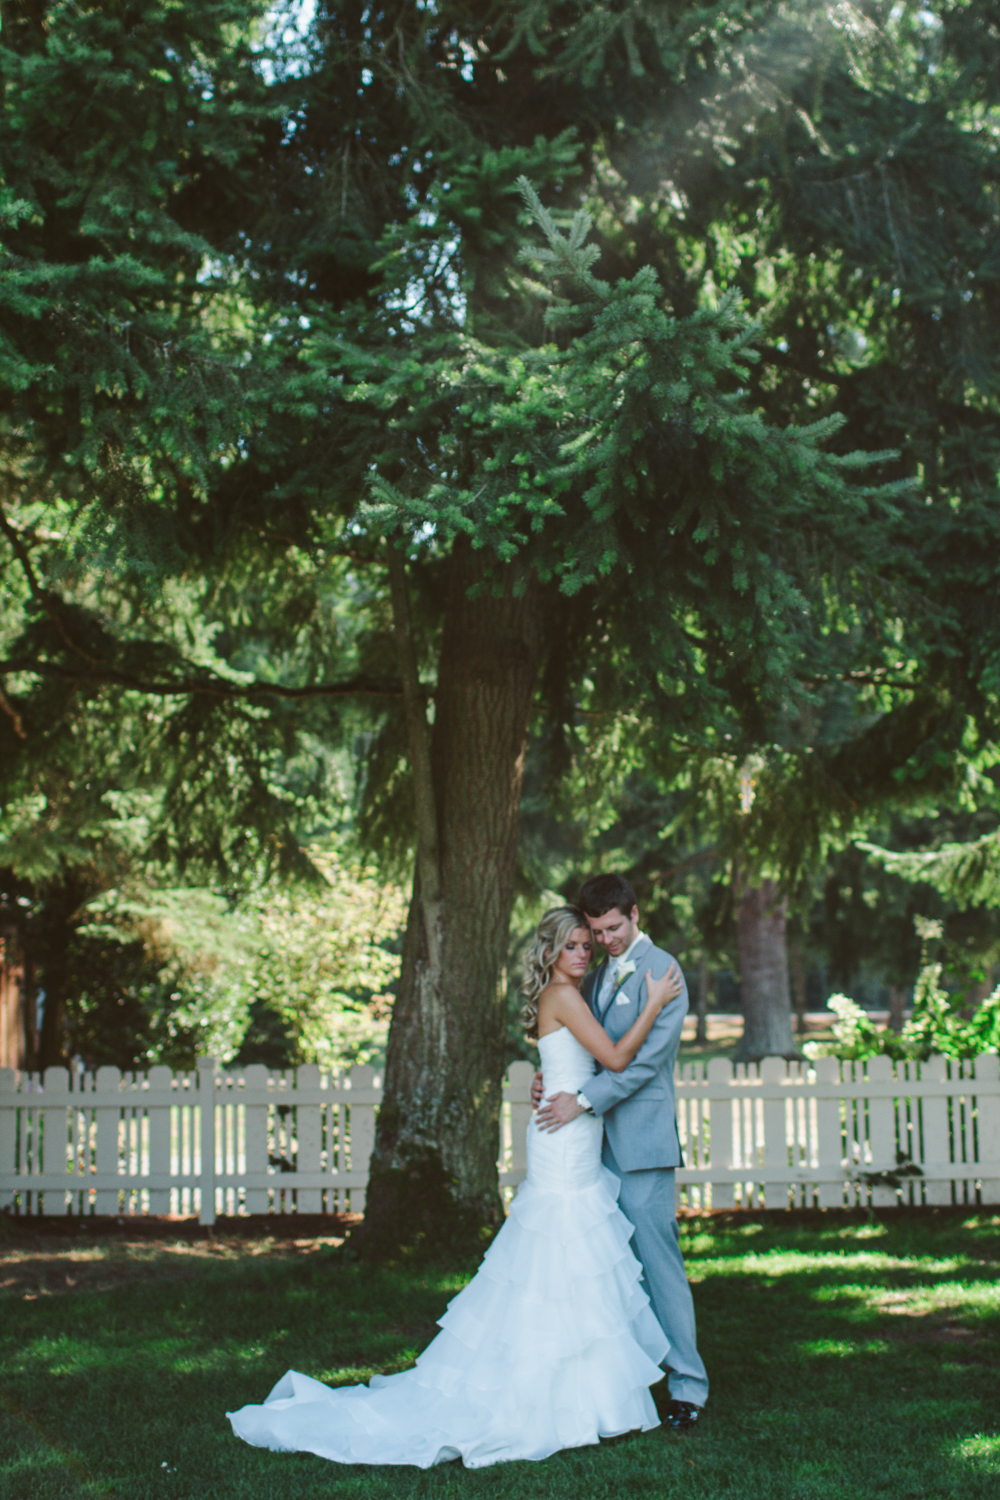 Jess Hunter Photography, Jessica Hunter, Seattle wedding photographer, washington state wedding photographer, rustic wedding, farm wedding, north florida wedding photographer, elopement photography, bride and groom portraits outdoors, intimate poses